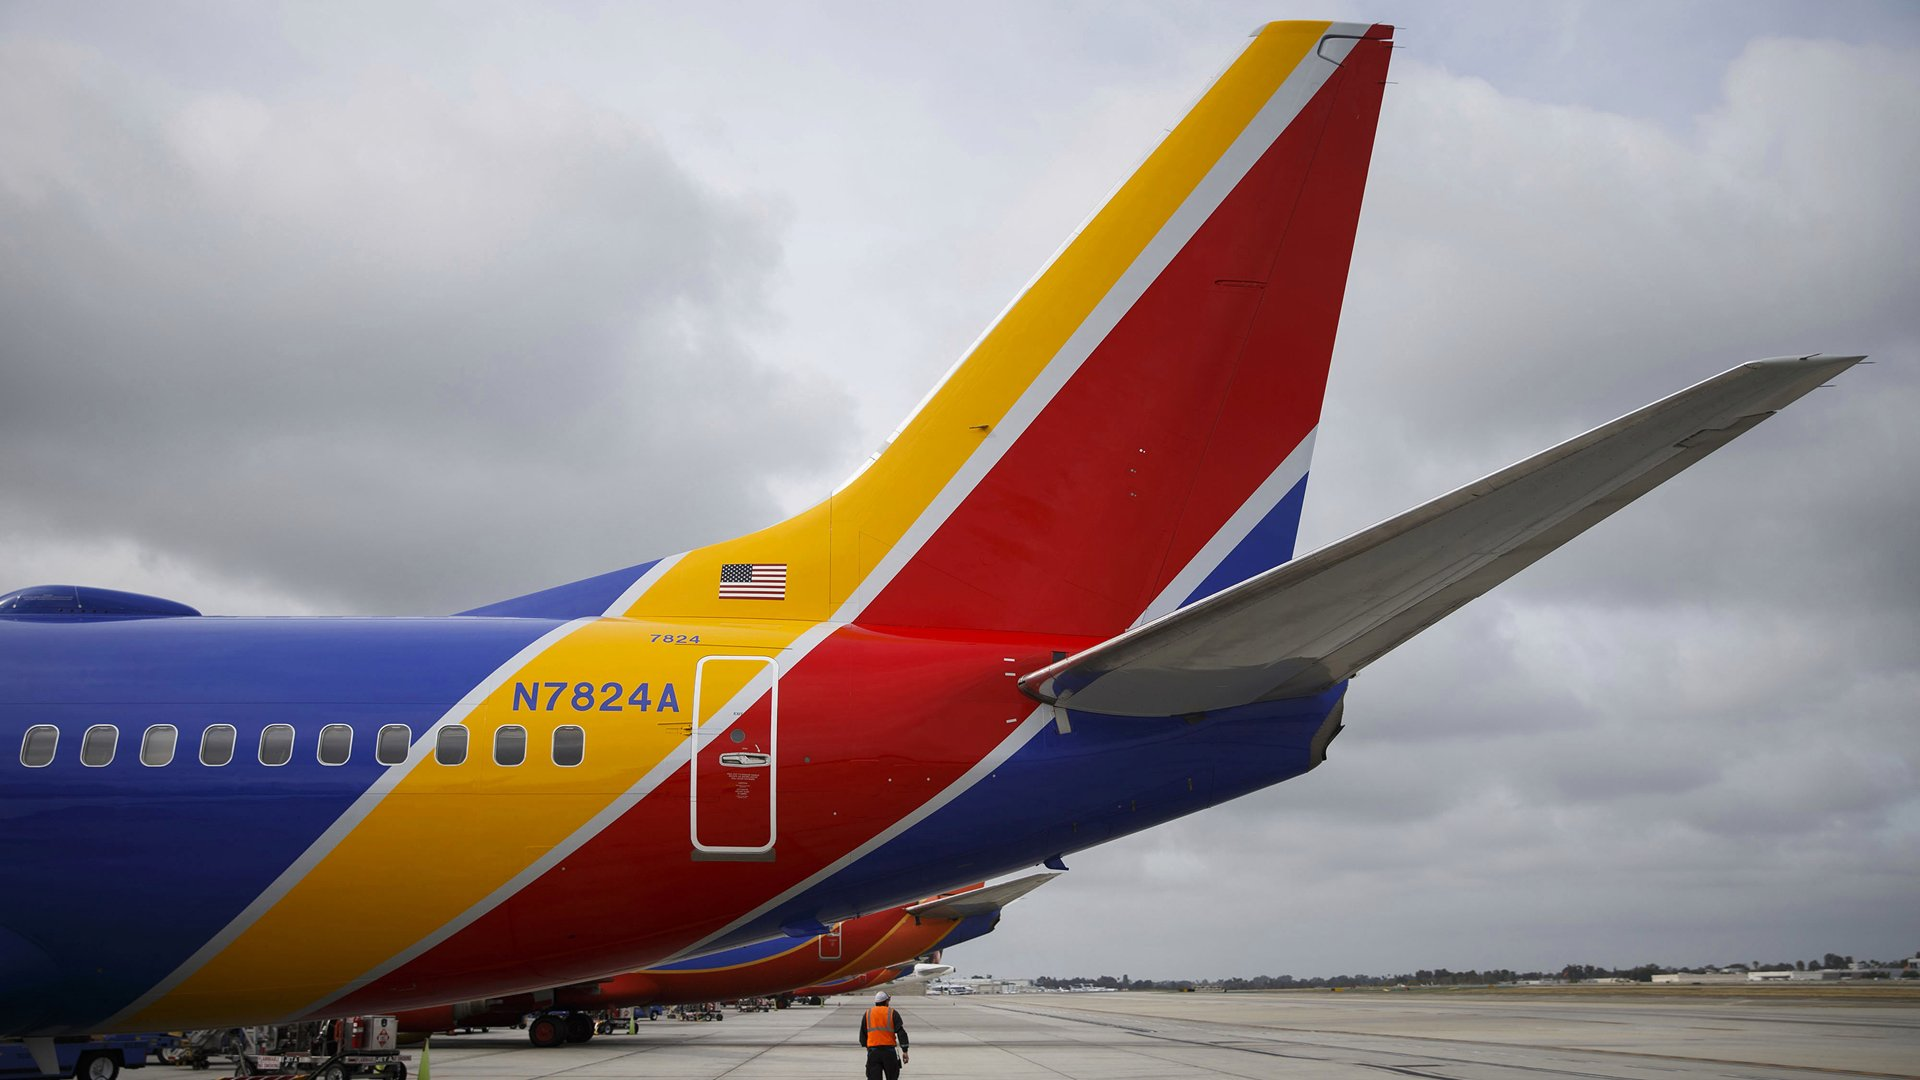 A Southwest Airlines Co. employee walks underneath the tail of a Boeing Co. 737 aircraft on the tarmac at John Wayne Airport (SNA) in Santa Ana, California, U.S., on Thursday, April 14, 2016. (Credit: Patrick T. Fallon/Bloomberg via Getty Images)